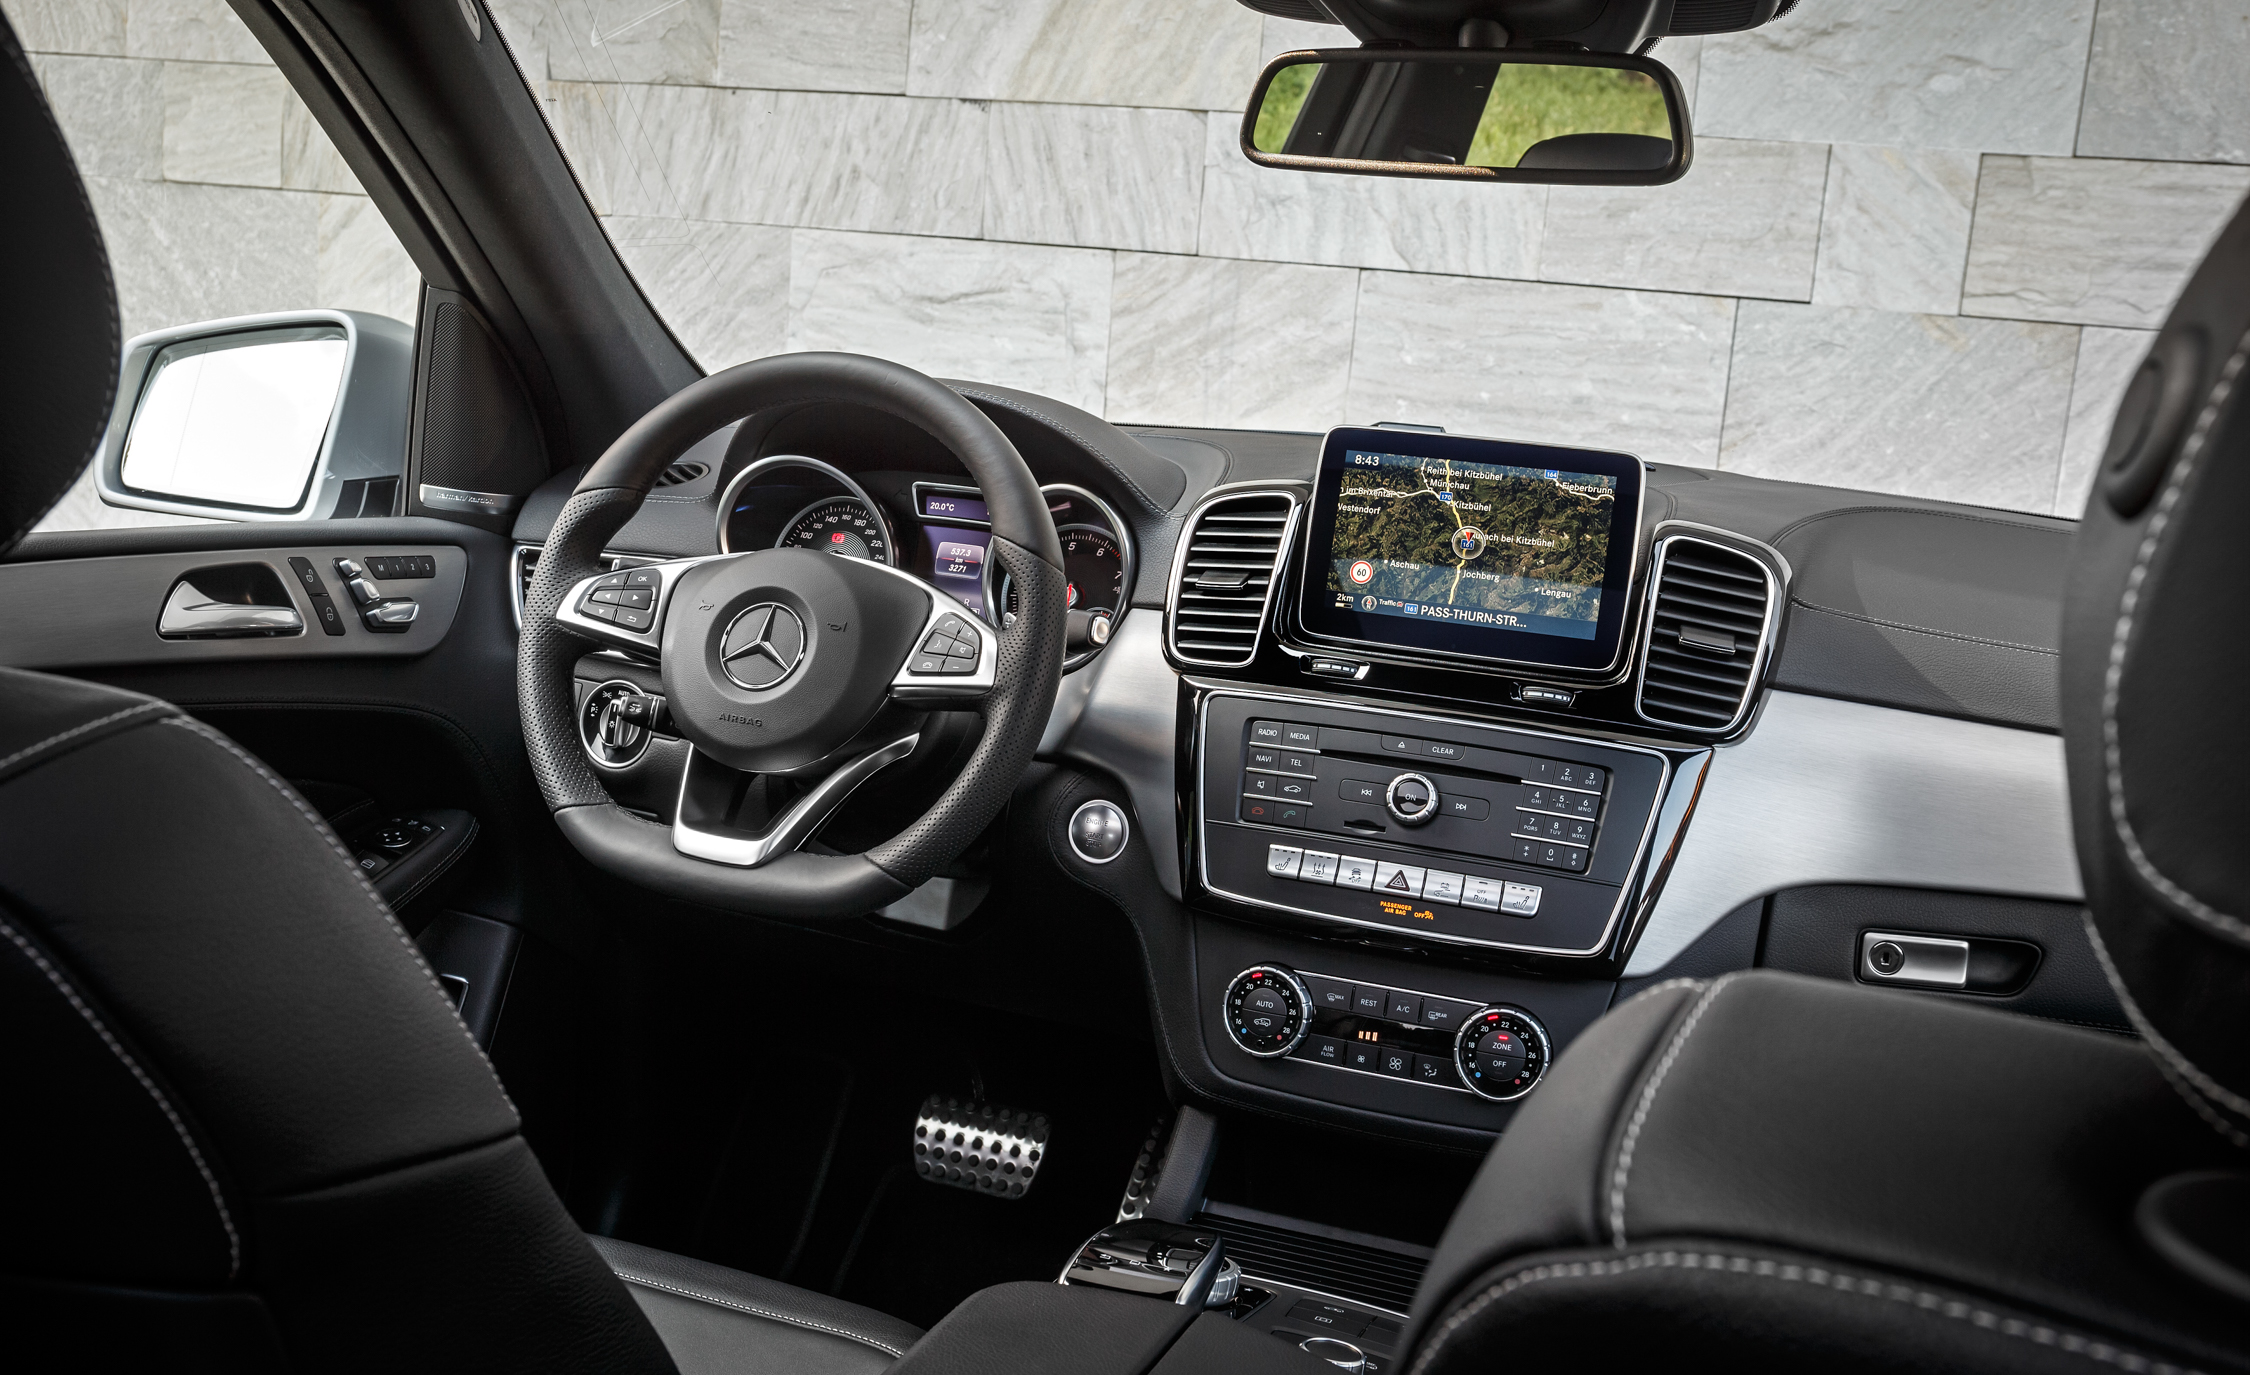 2016 Mercedes Benz GLE Class Cars Exclusive Videos And